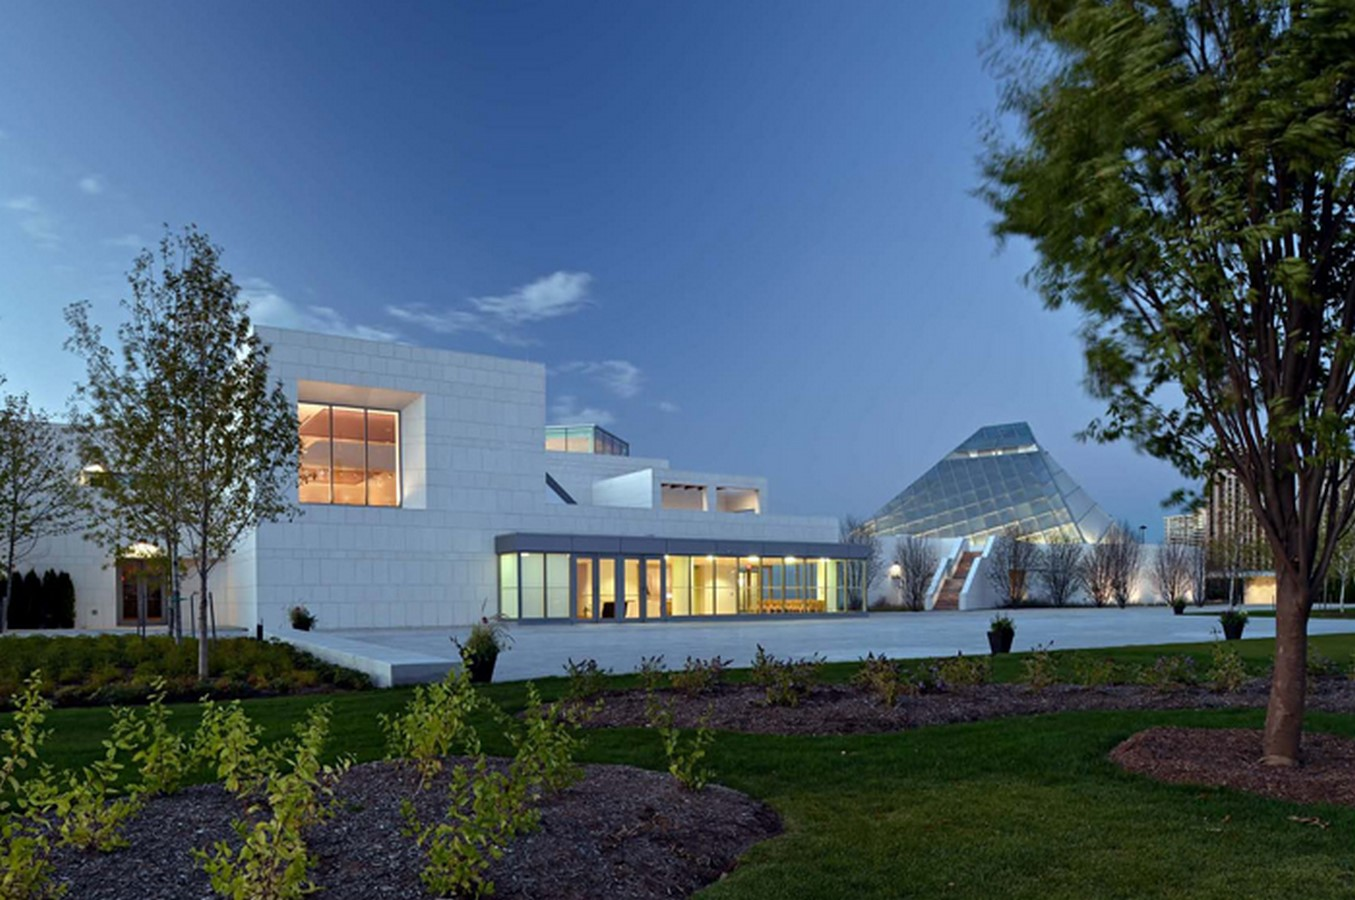 The Ismaili Centre by Charles Correa: Harmonizing Spiritual, Artistic and Natural world - Sheet7